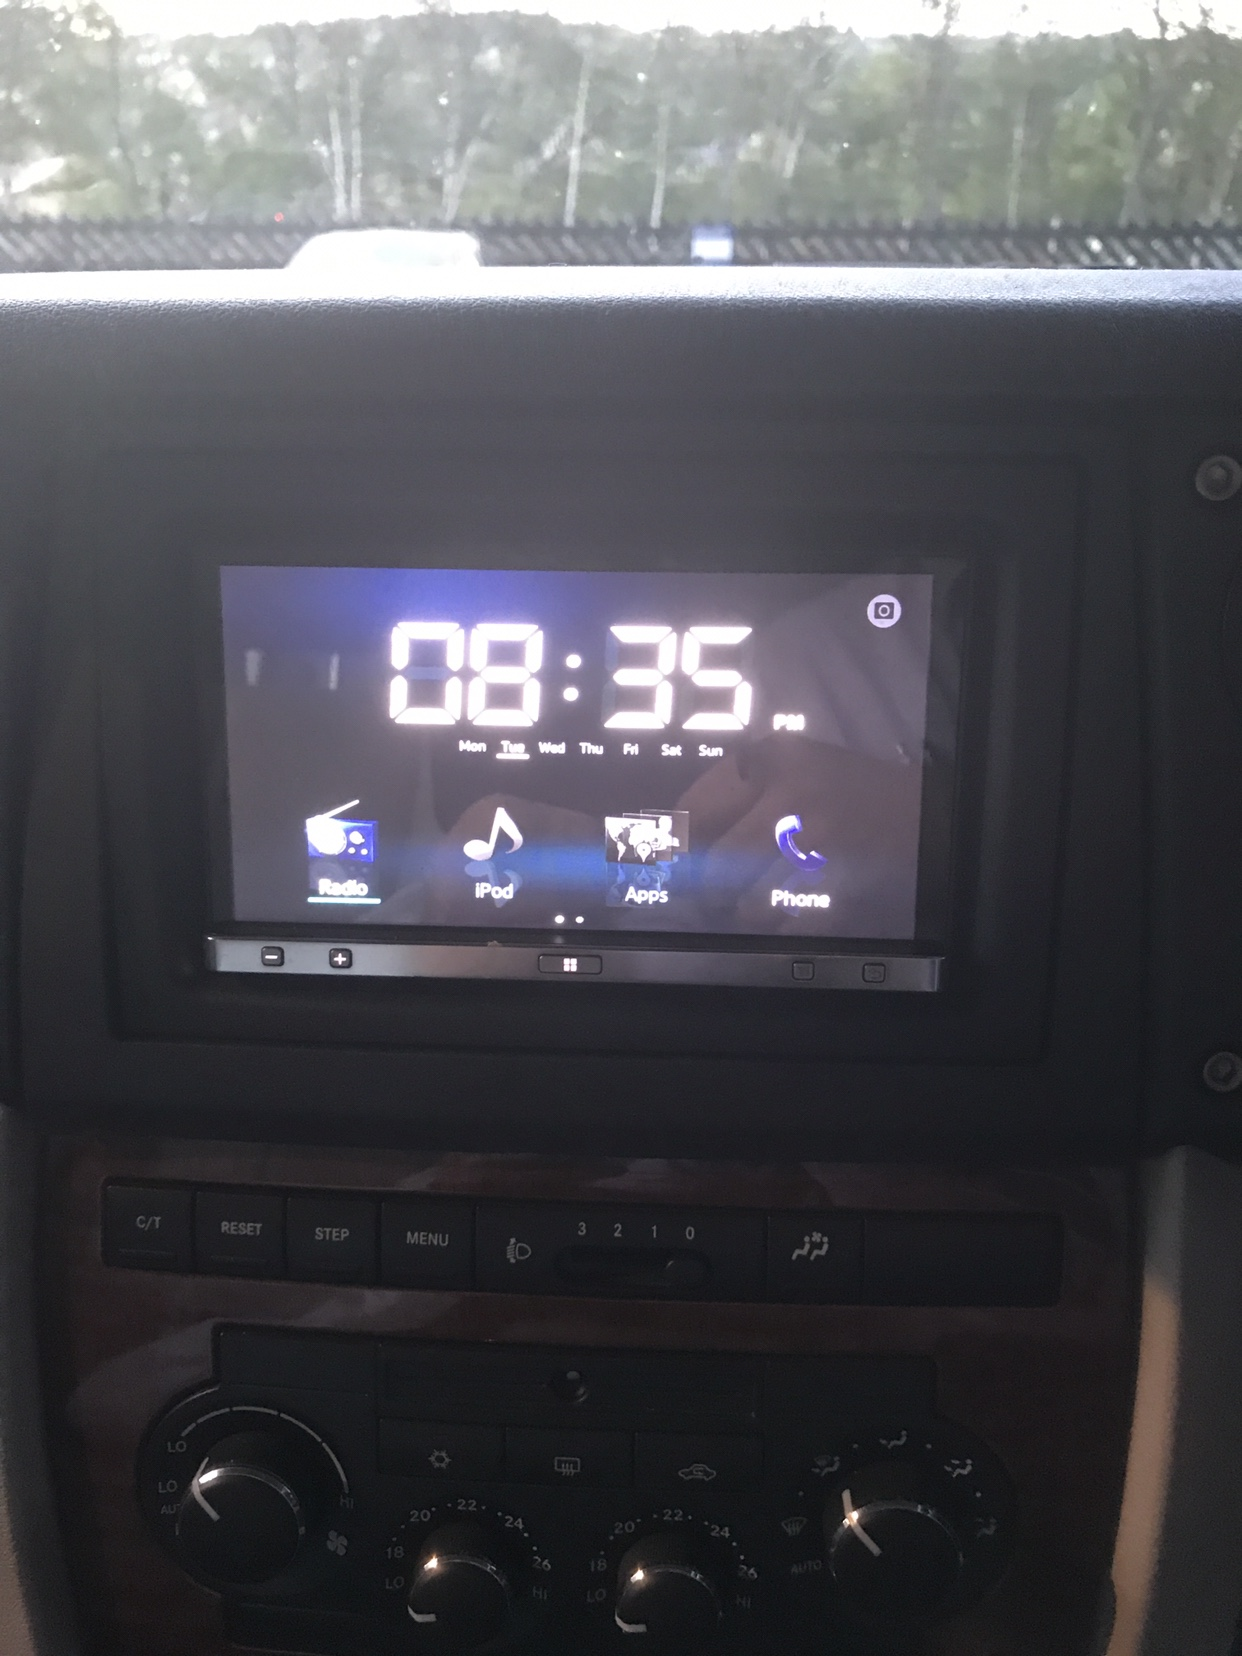 Jeep Commander Mfd Screen Club Wiring Harness The Is Expensive But Worth Expense You Can Get It For Your Specific Head Unit I Have Put A Pioneer App Radio In Mine